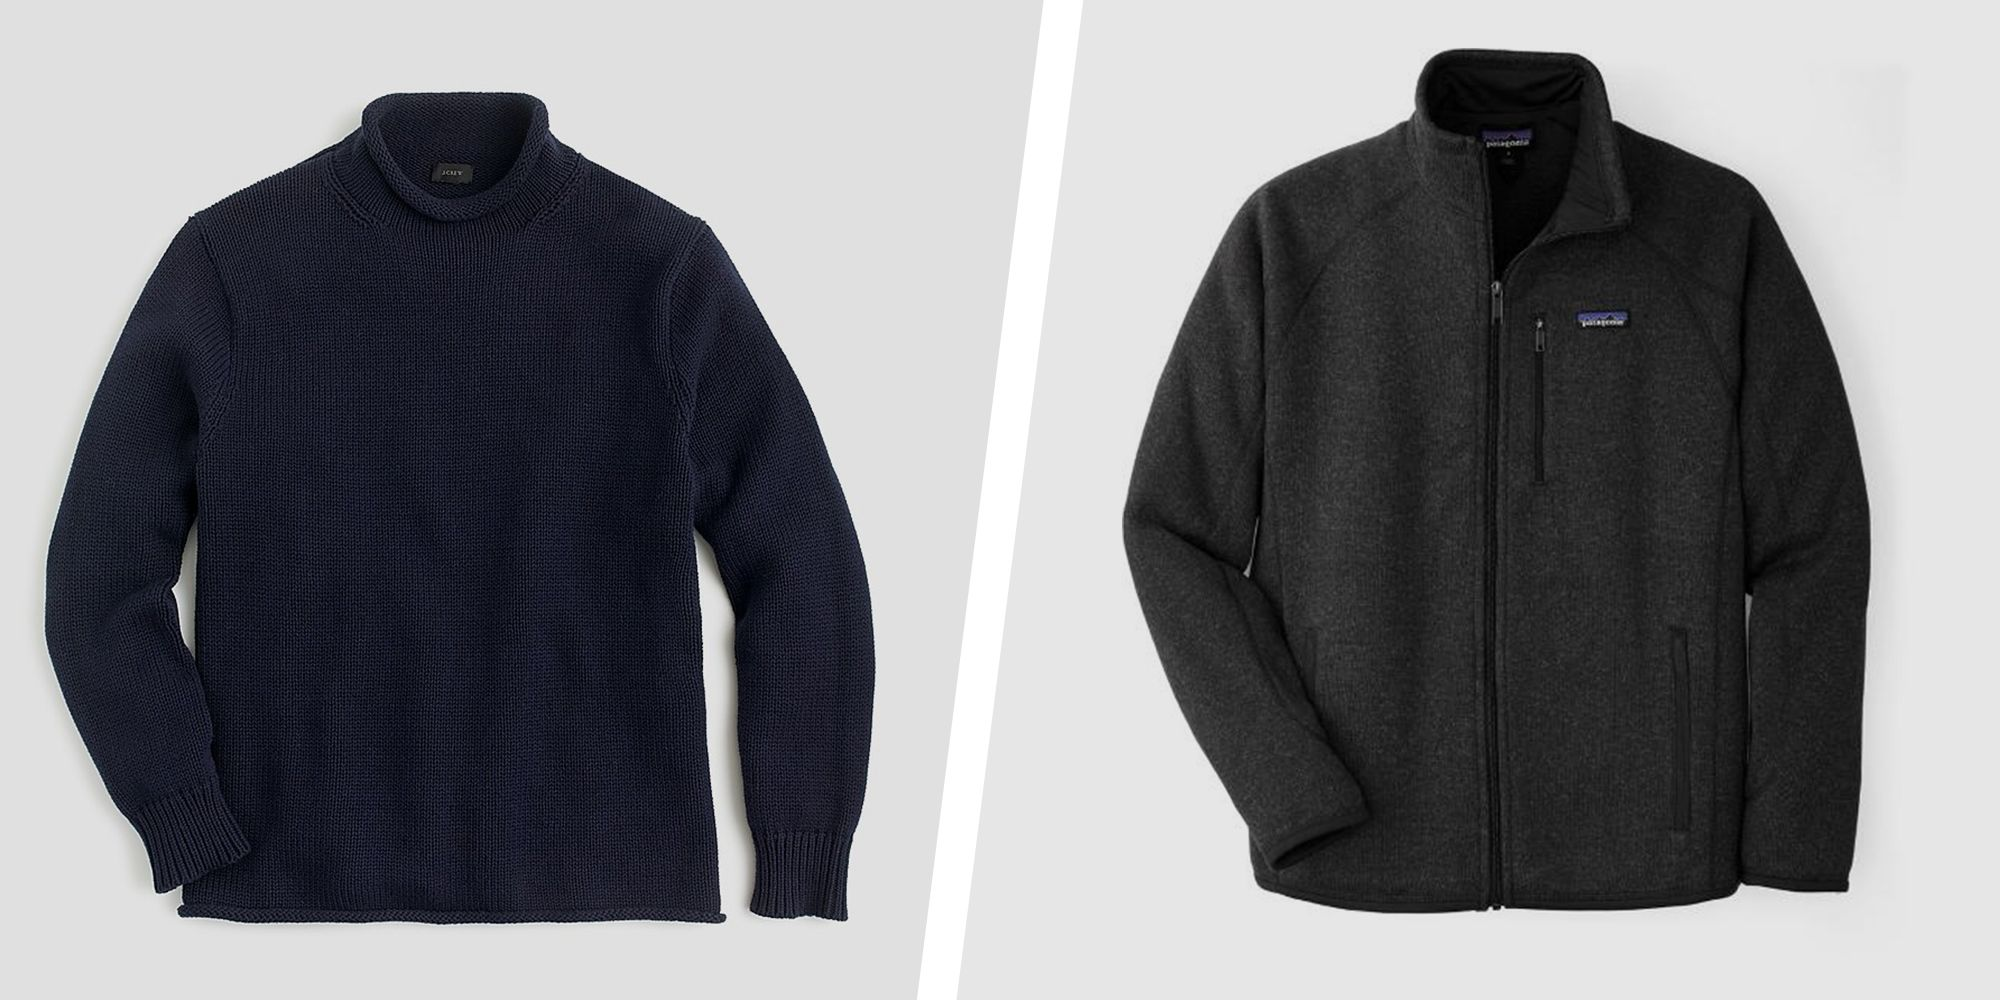 10 Winter Sweaters for Men 2020 The Best Cozy, Warm Sweaters